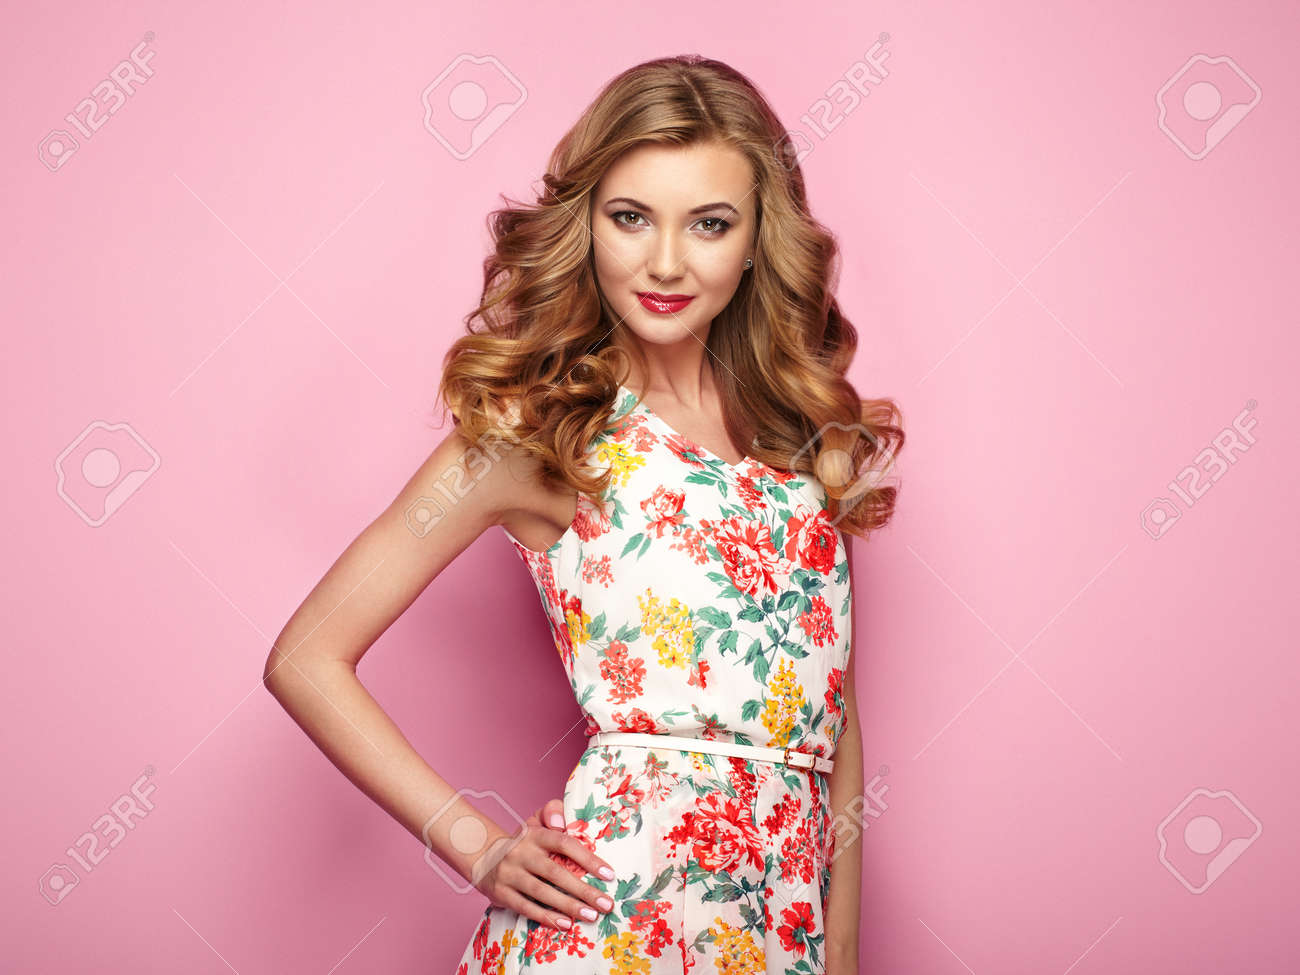 Blonde young woman in floral spring summer dress. Girl posing on a pink background. Summer floral outfit. Stylish wavy hairstyle. Fashion photo. Blonde lady - 76004080